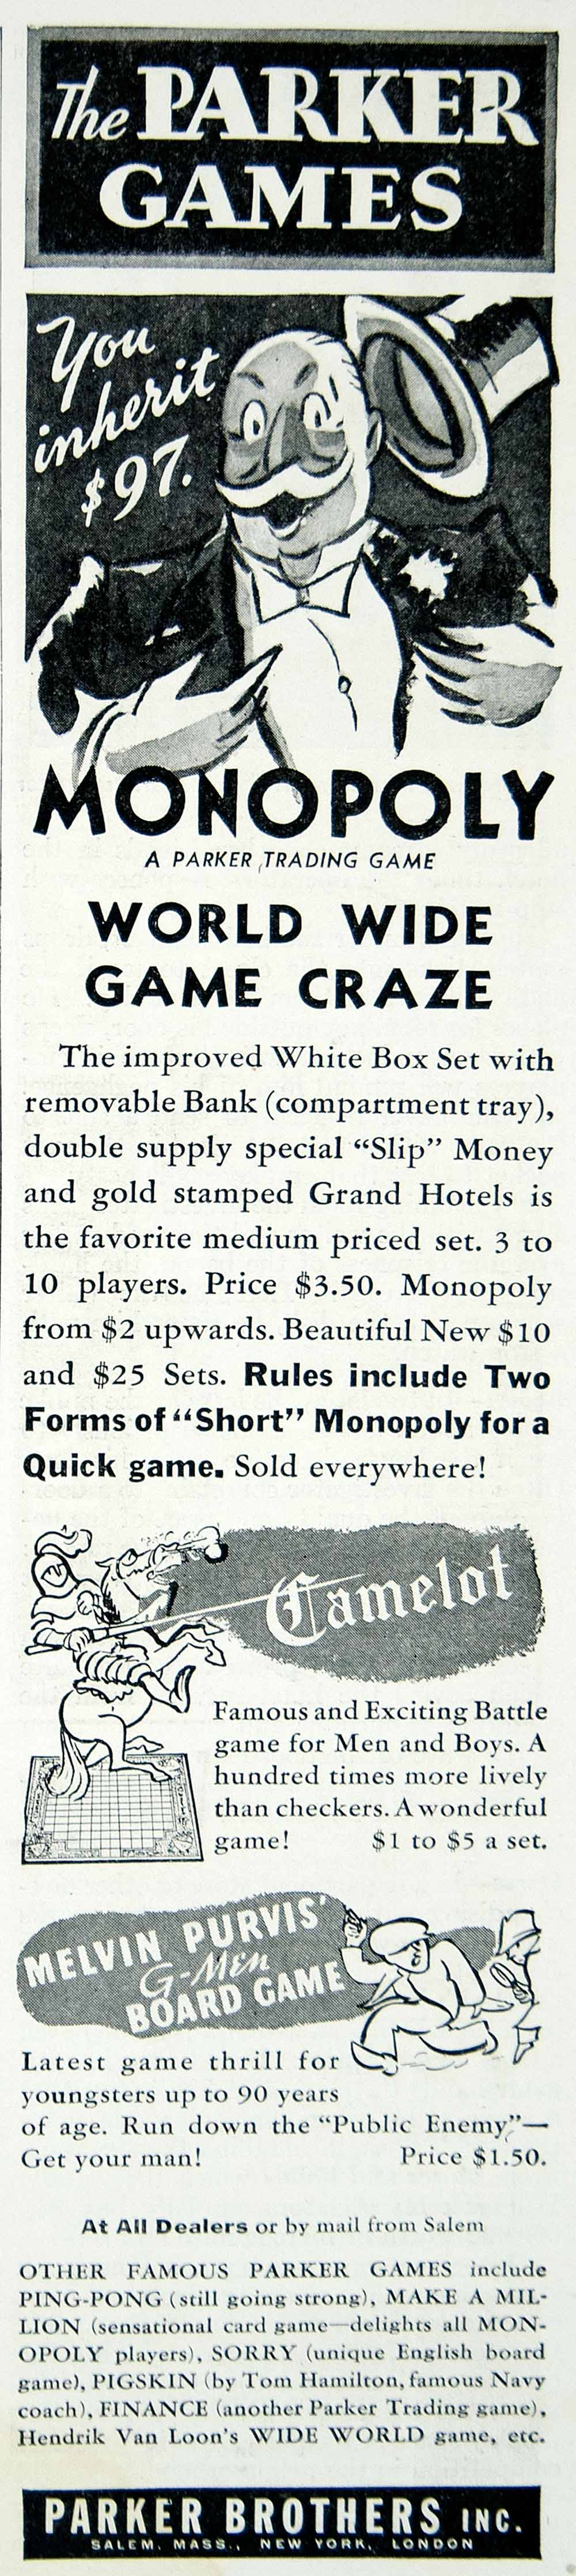 Vintage Toys Page 6 - Period Paper